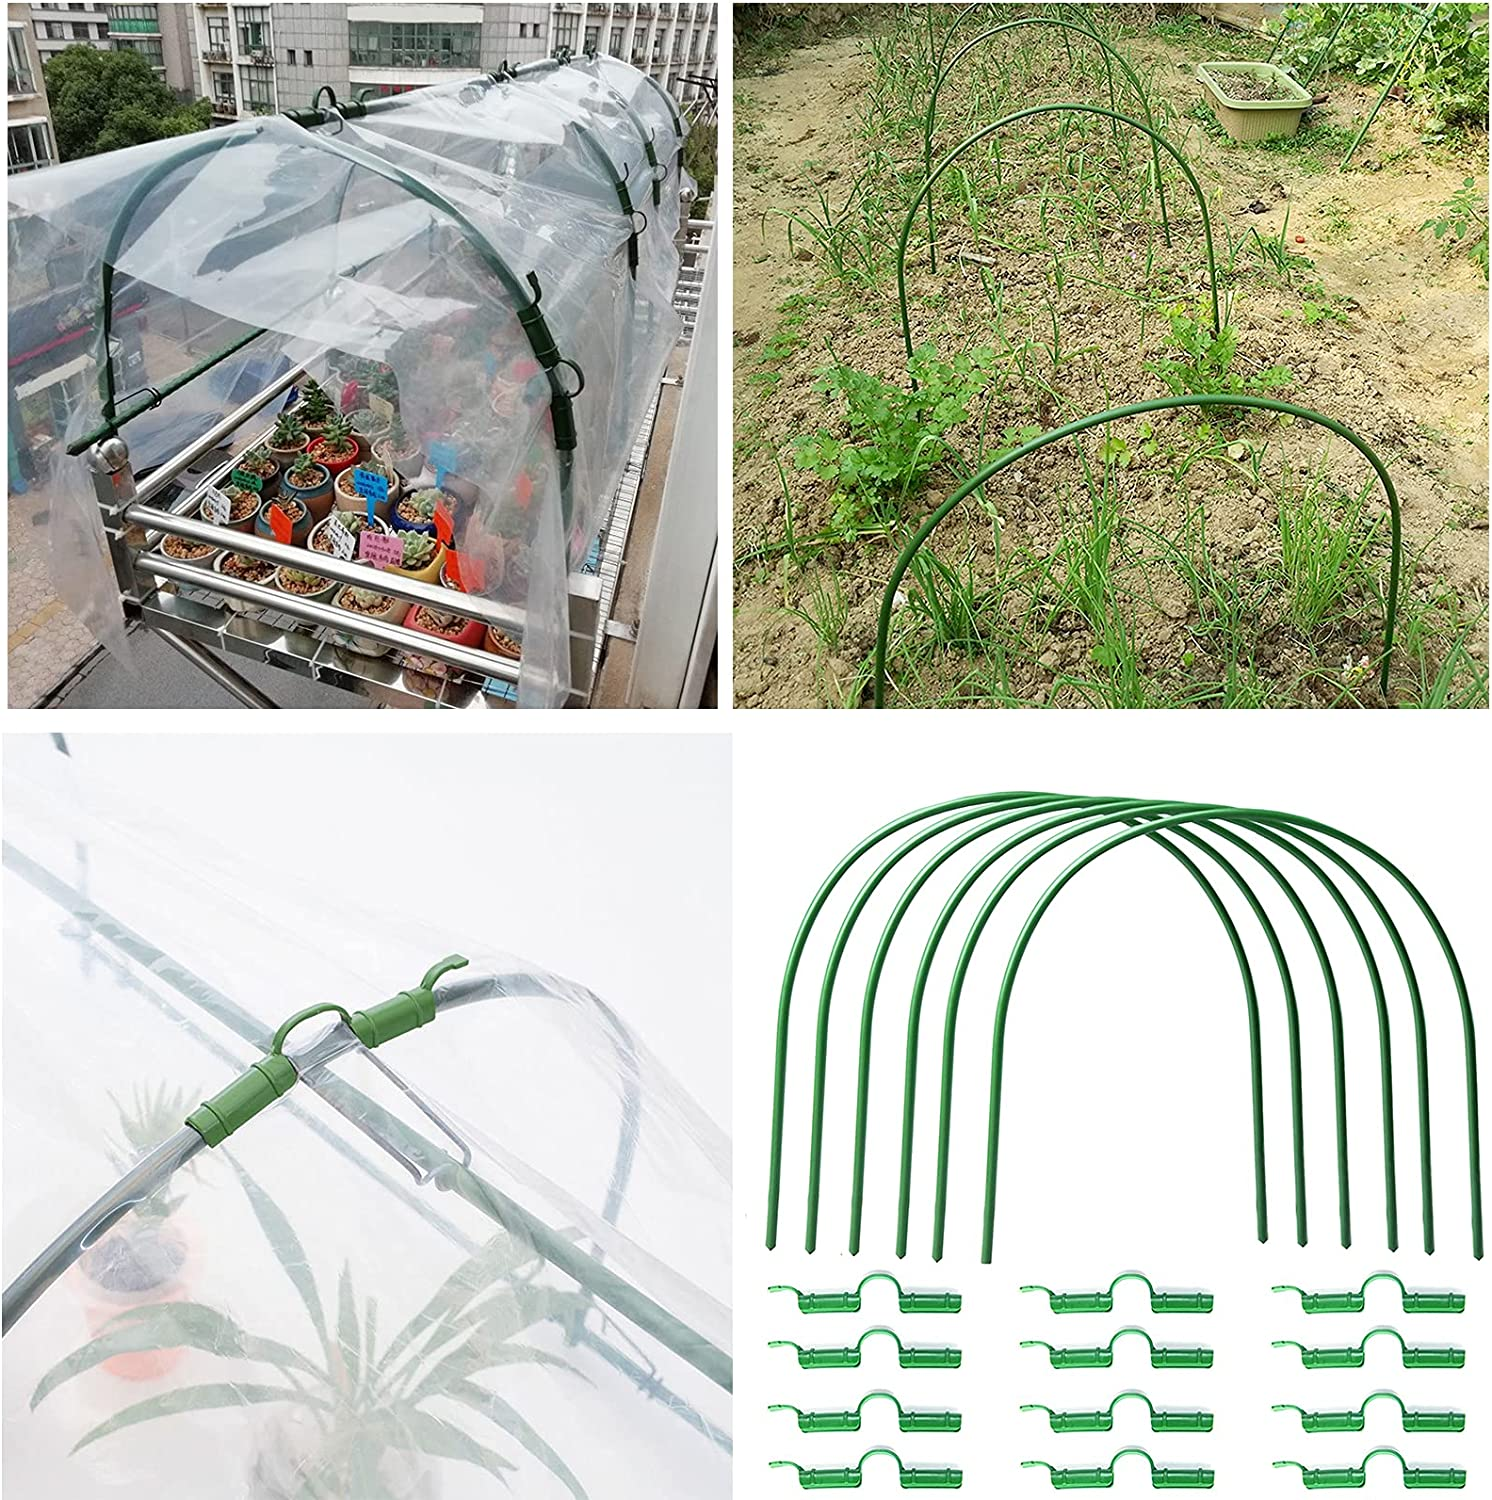 Dysetcs Garden Hoops 6 Pack Support Super-cheap Stakes Free shipping on posting reviews Grow Tun Plant